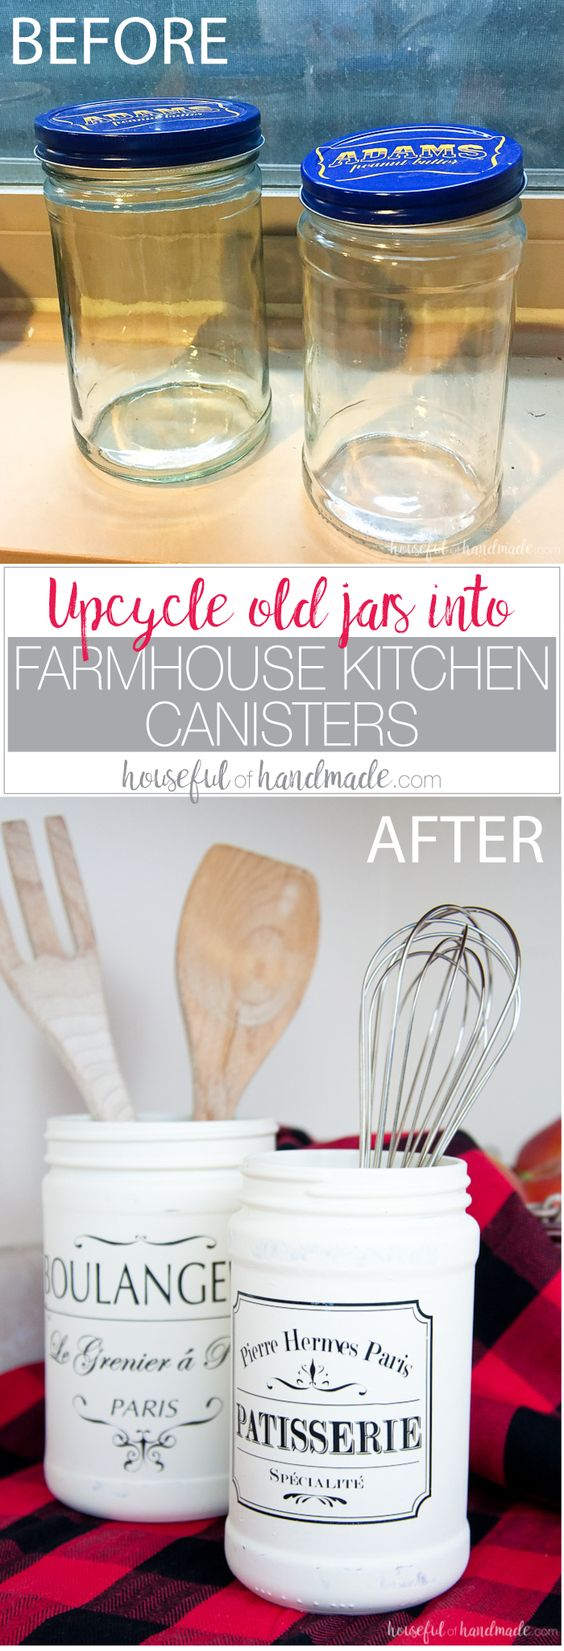 Farmhouse Kitchen Canister Made Out Of Old Mason Jars.